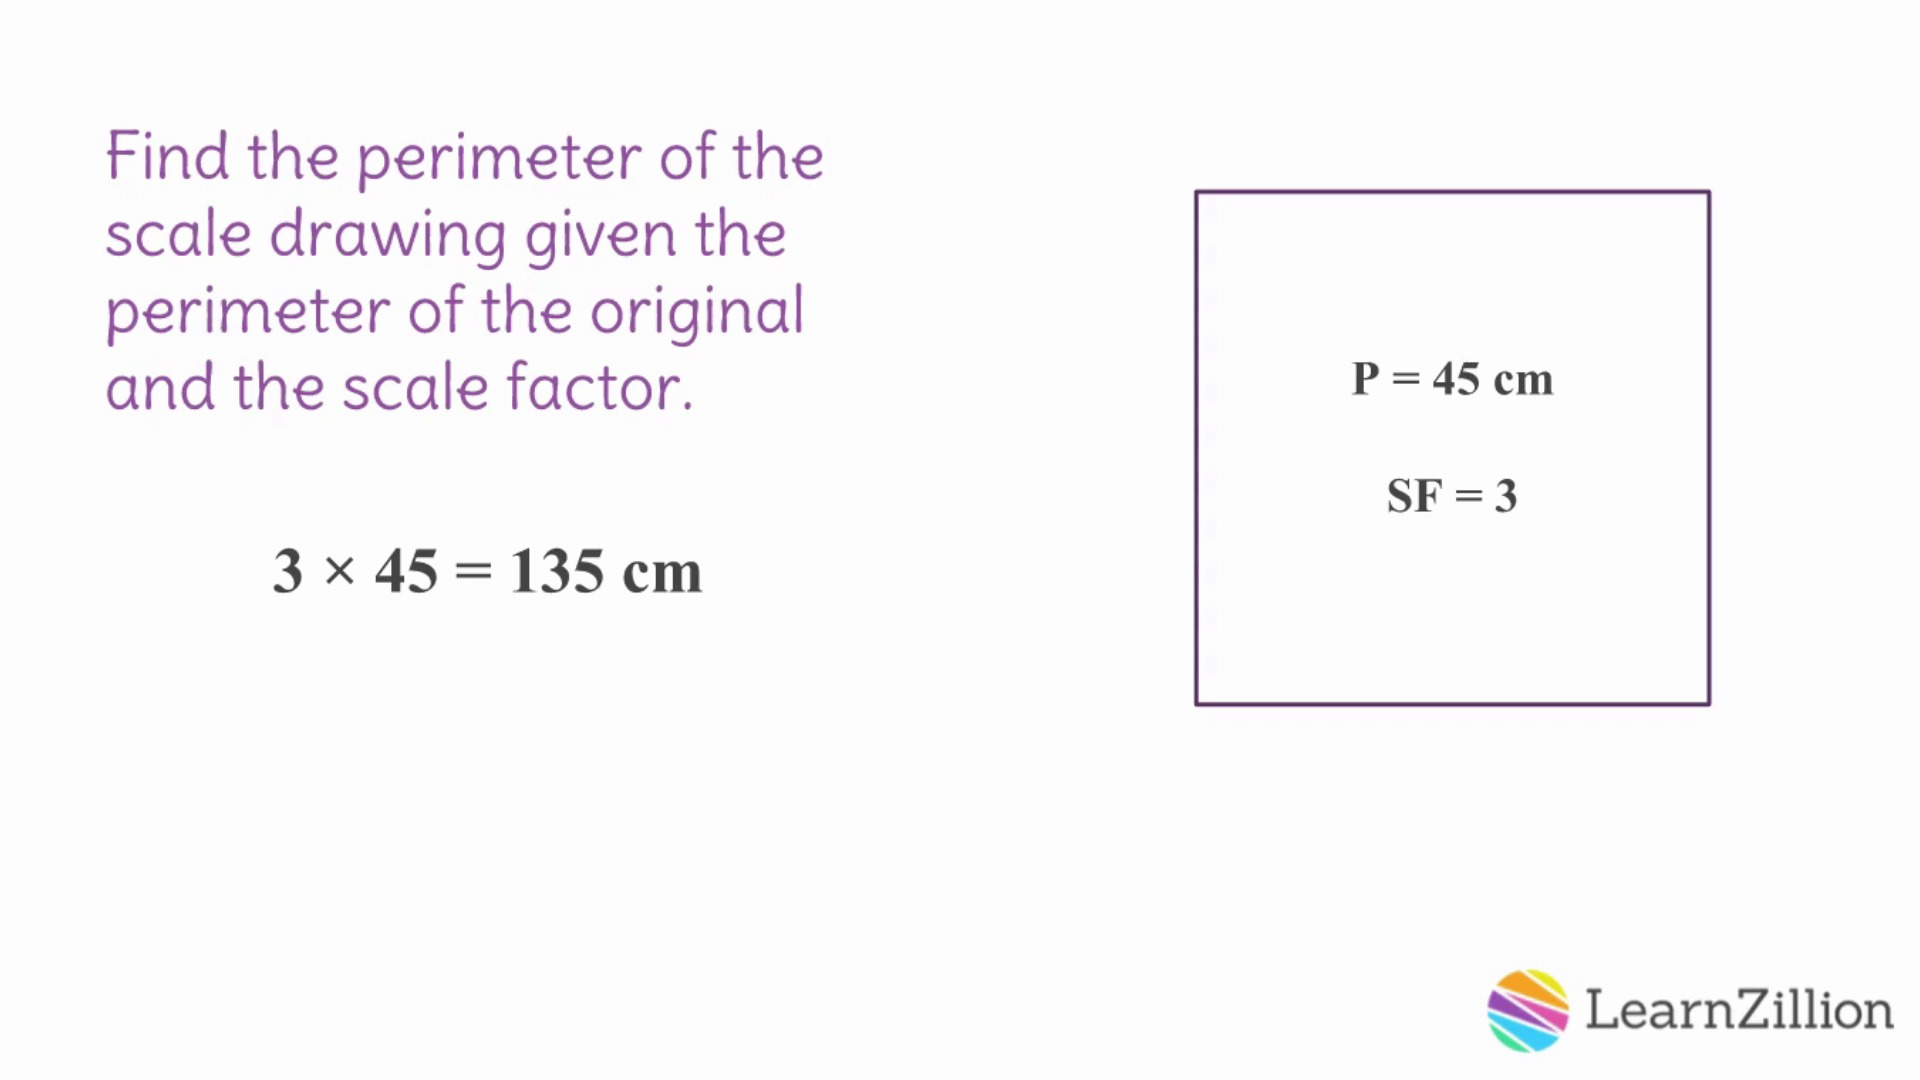 5 calculate perimeters of scale drawings given scale factors fp calculate perimeters of scale drawings given scale factors fp learnzillion ccuart Images